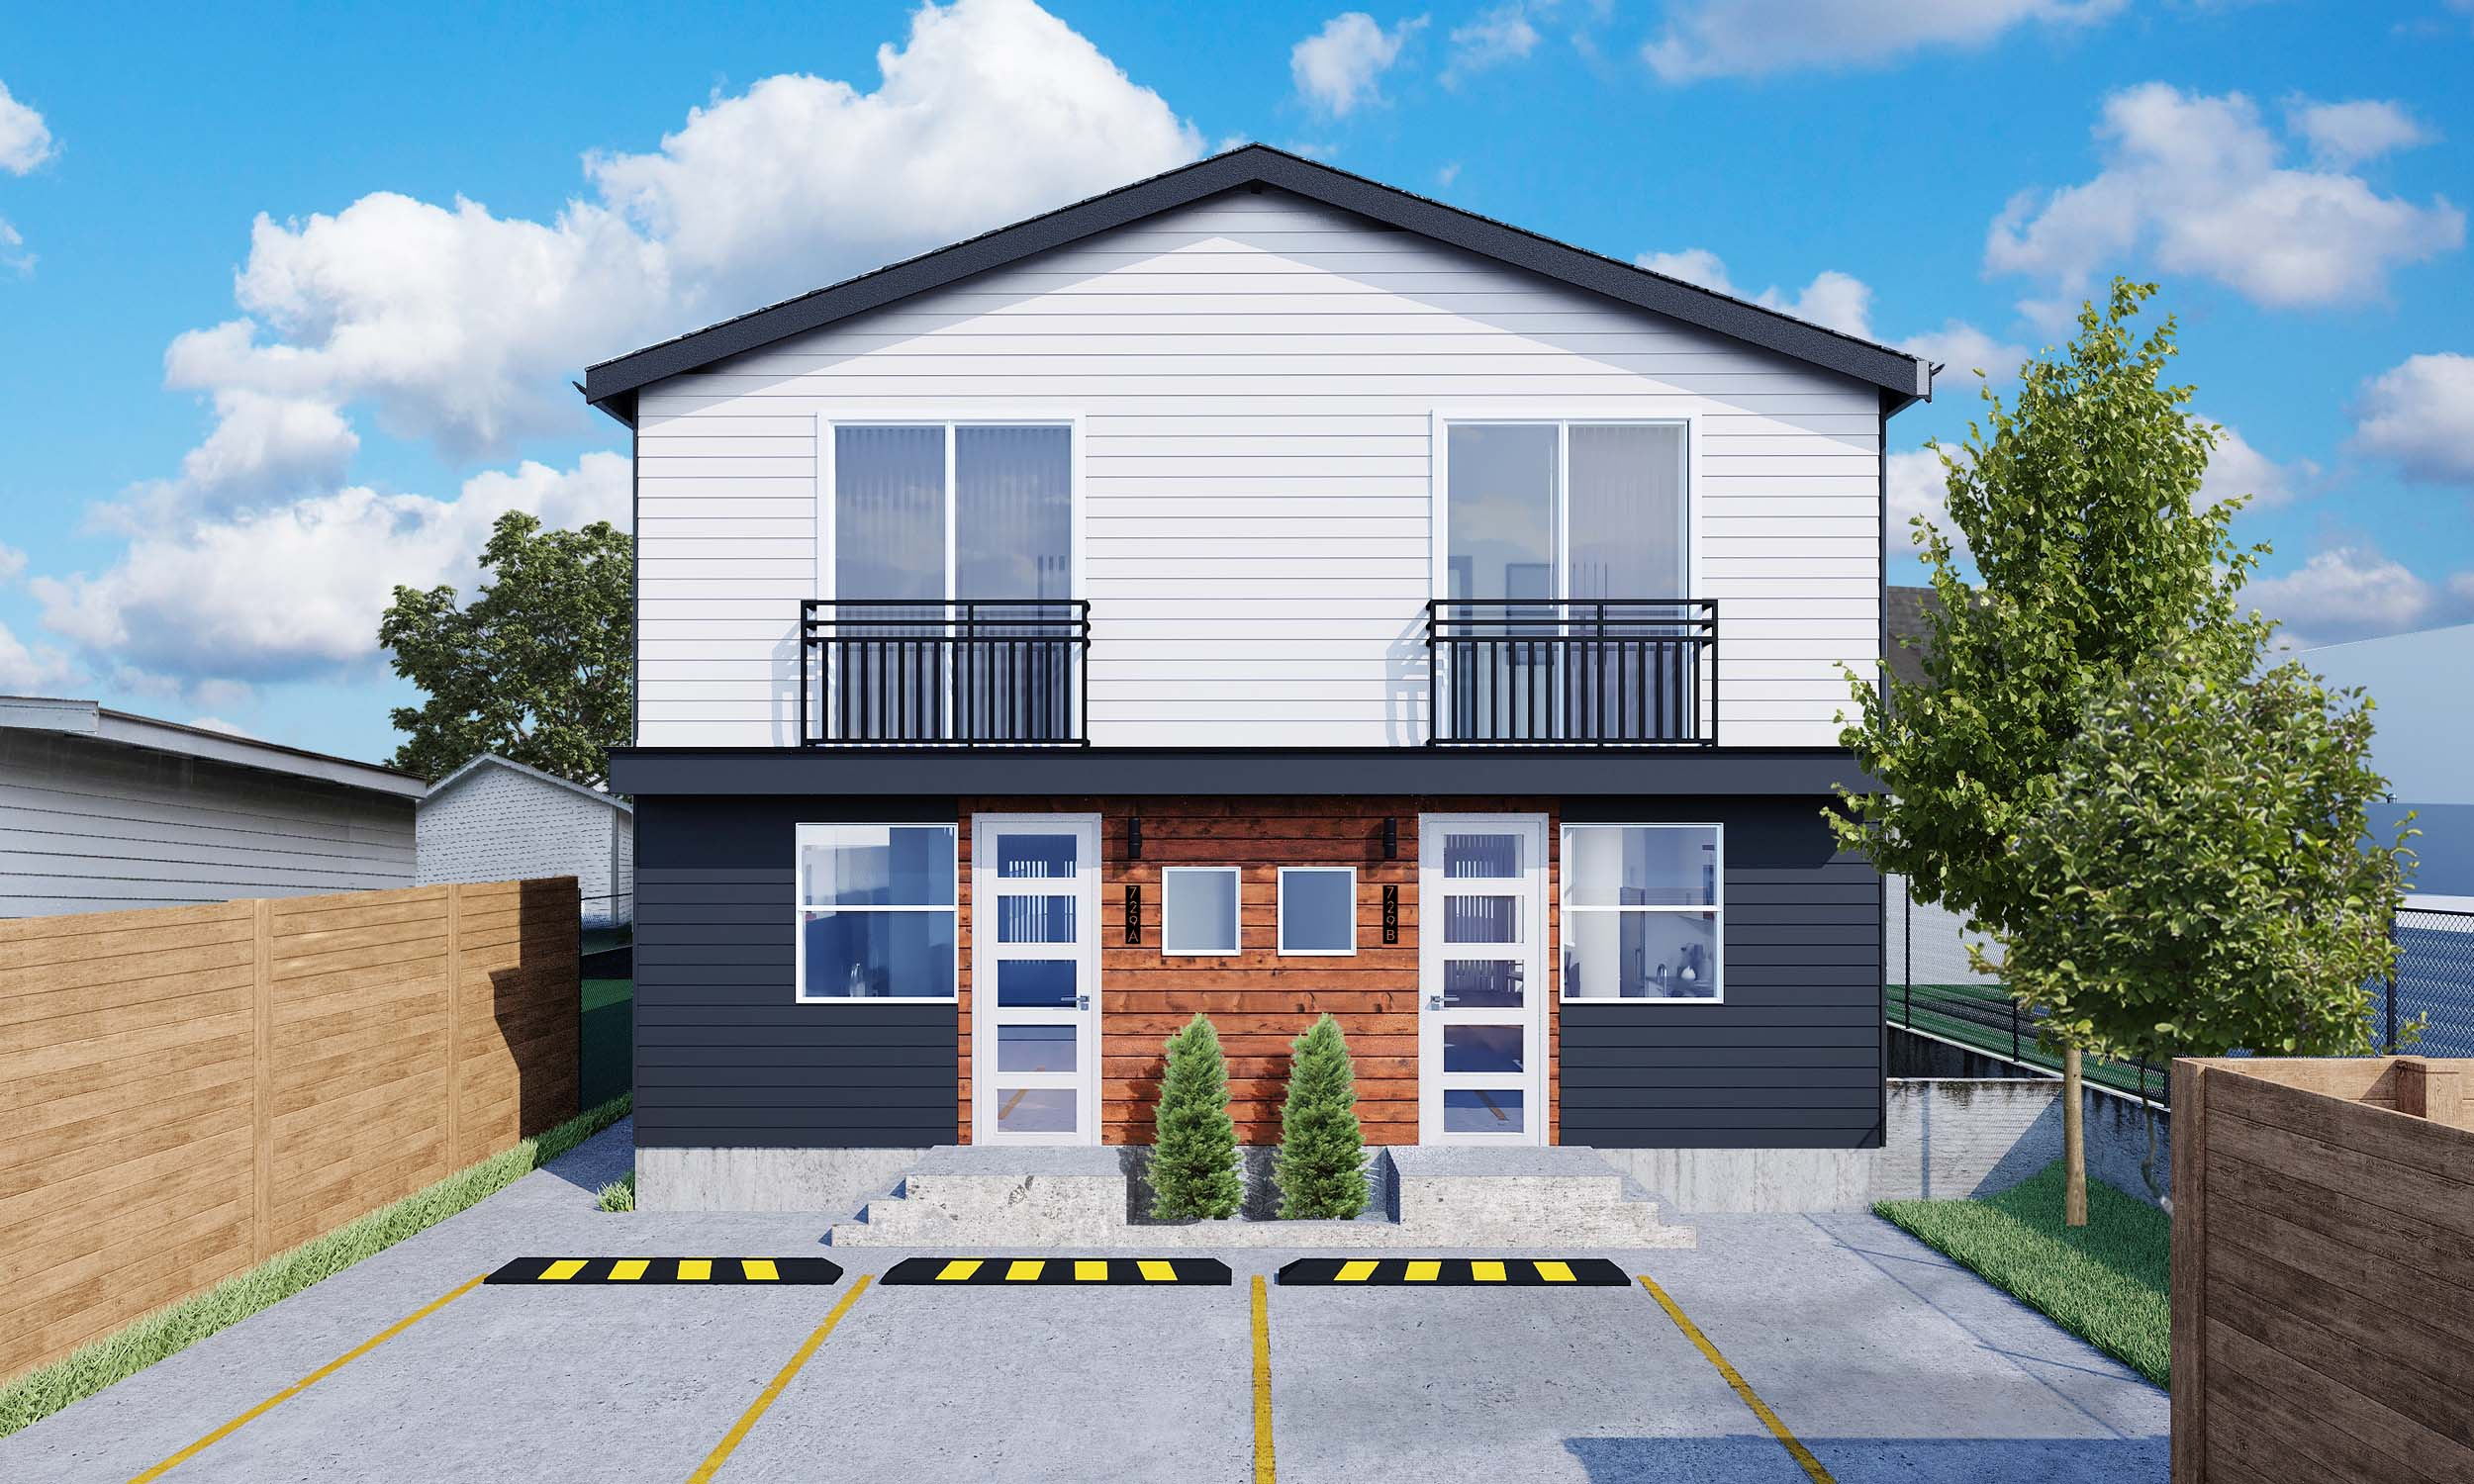 Custom design and construction of a single family residence (SFR) with an attached accessory dwelling unit (AADU).